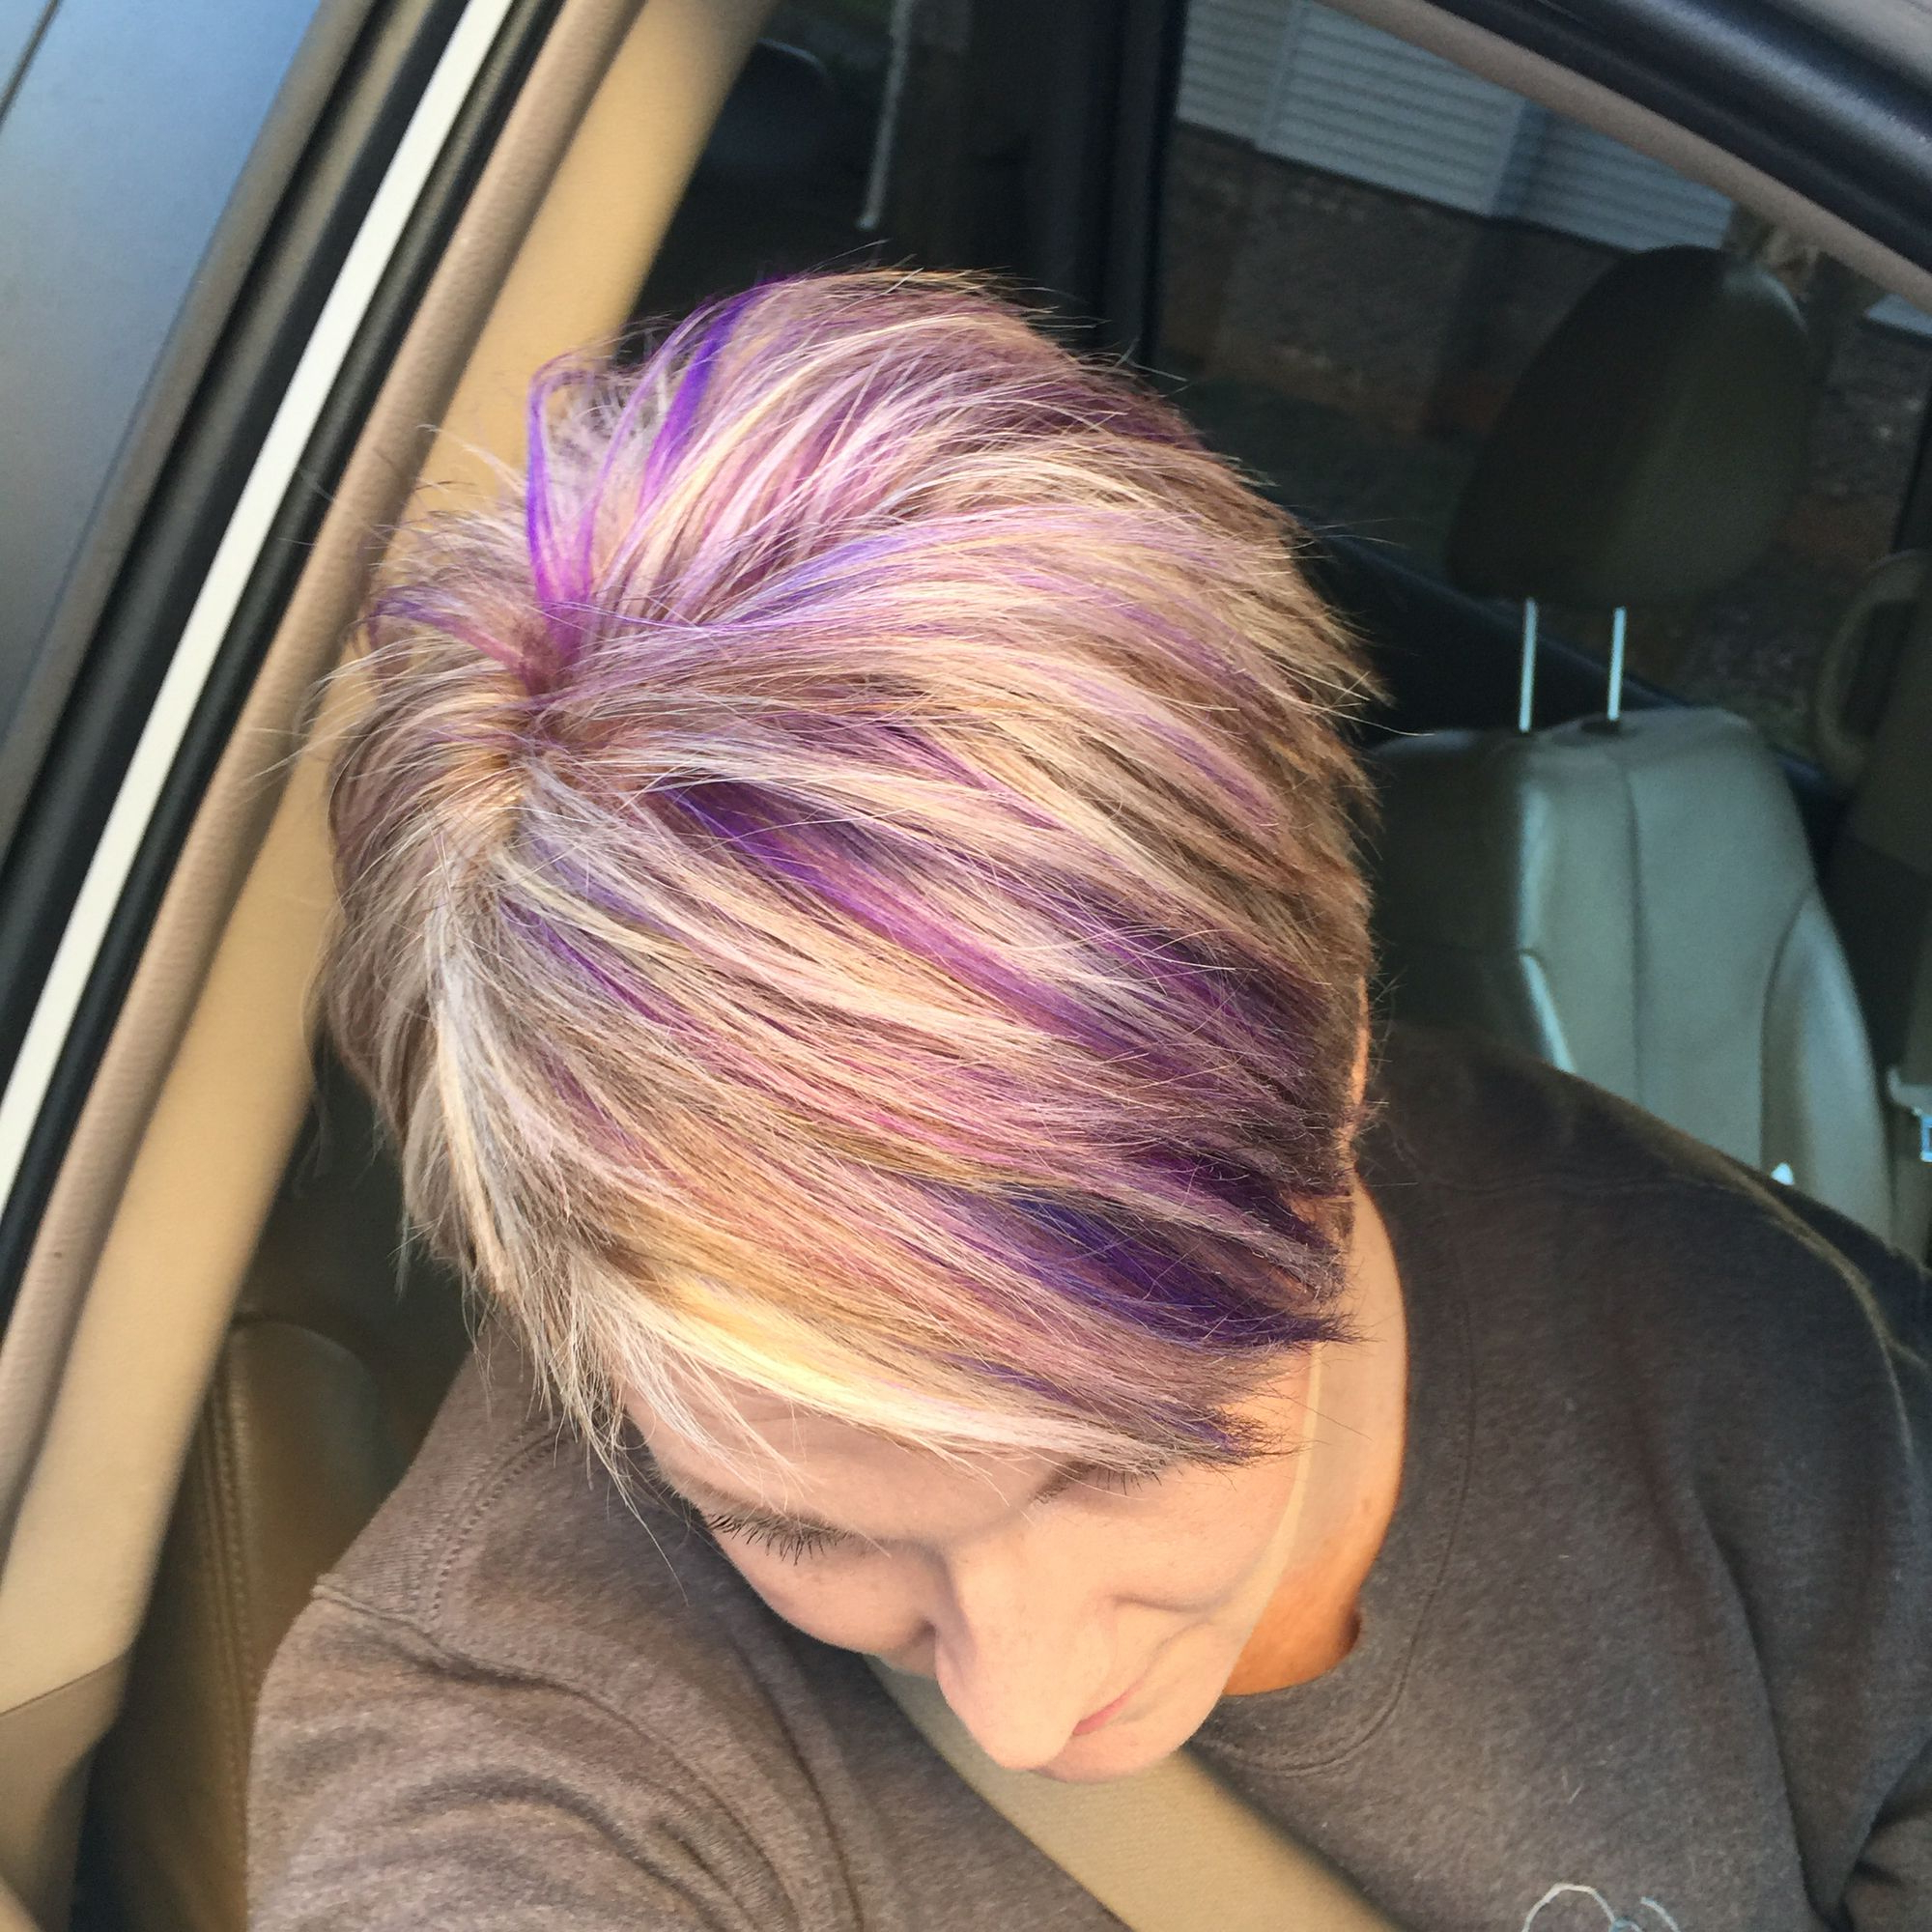 Blonde Pixie Haircut With Purple And Fuchsia Highlights! | Hair Hair In Messy Pixie Hairstyles With Chunky Highlights (View 12 of 20)